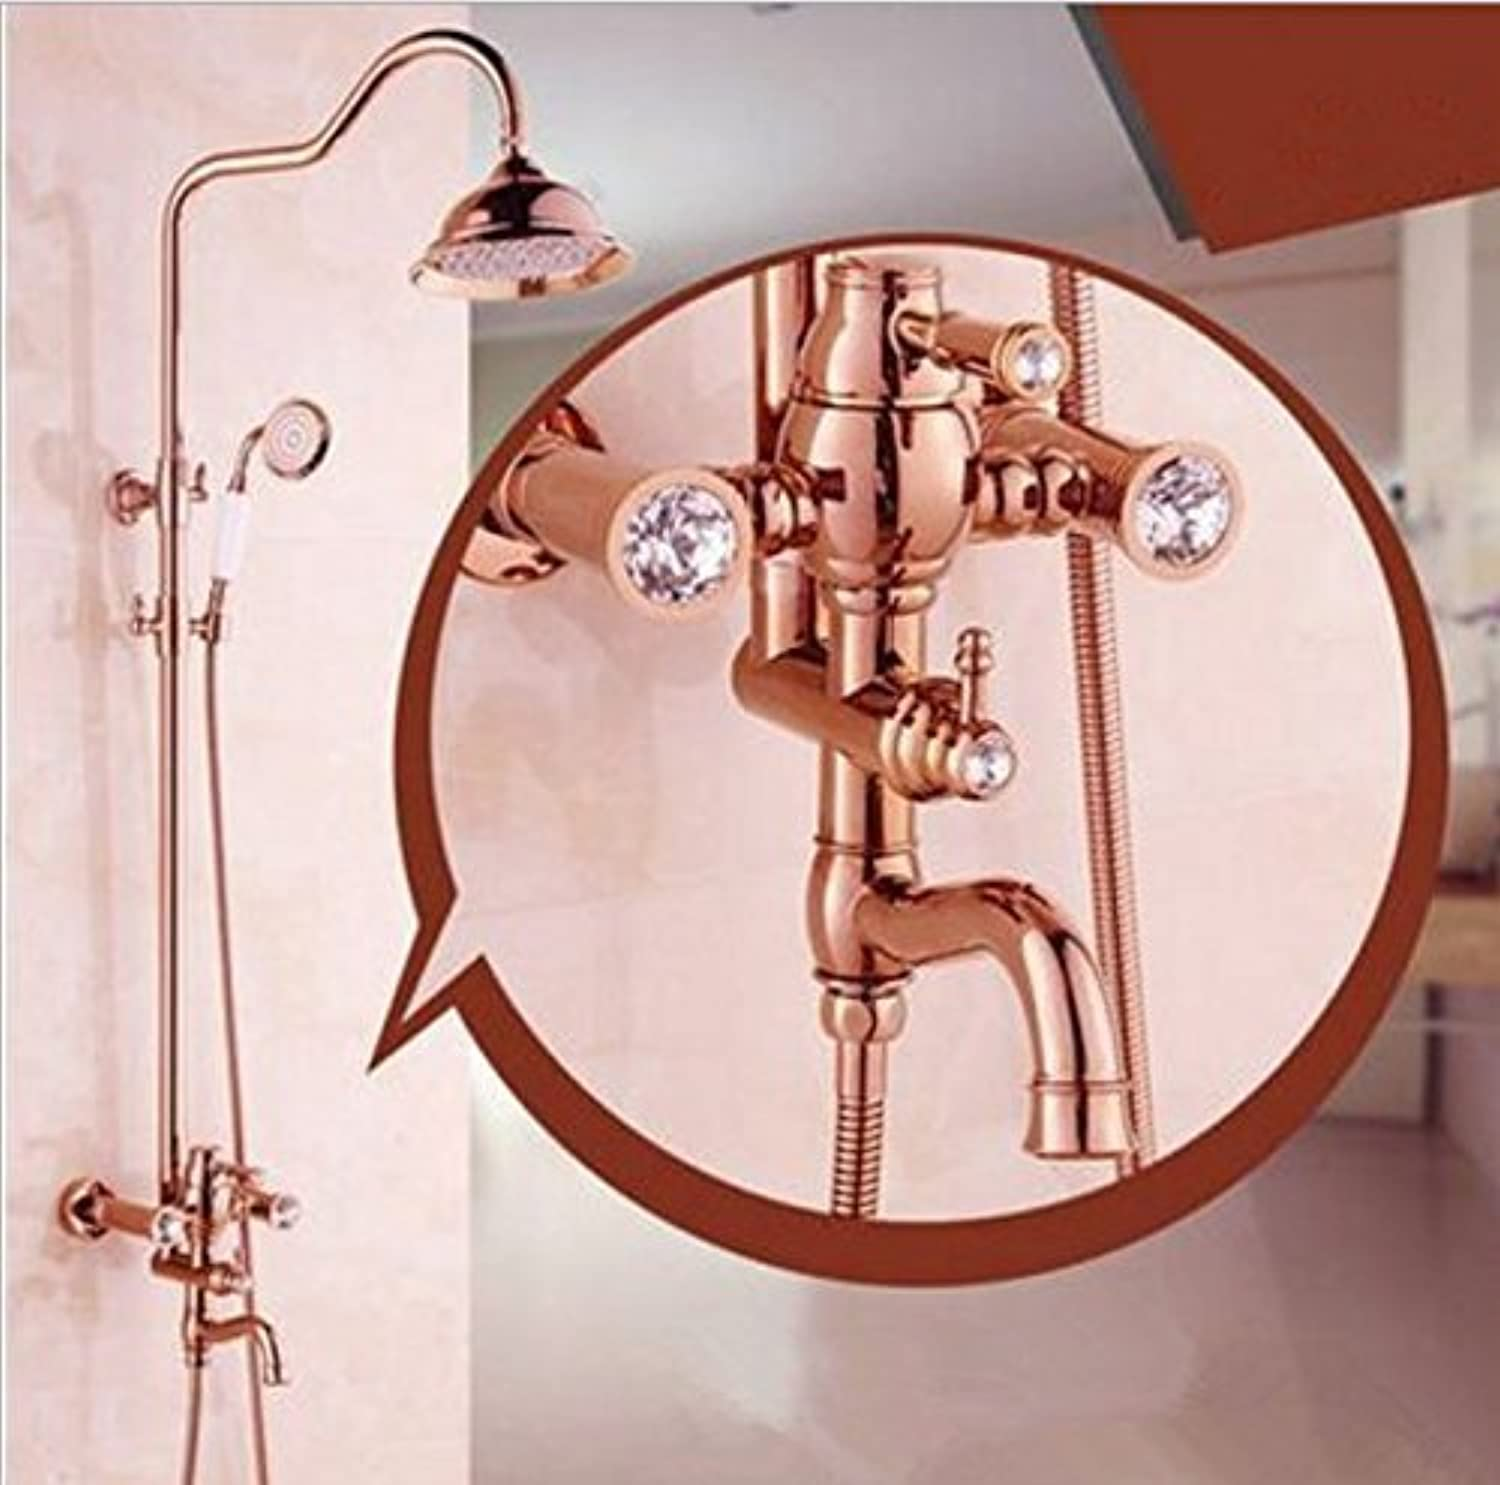 Party Girls S Shower Mixer, Home Bathroom Bath all copper cold and hot water European pink gold shower sprinkler suit Lift